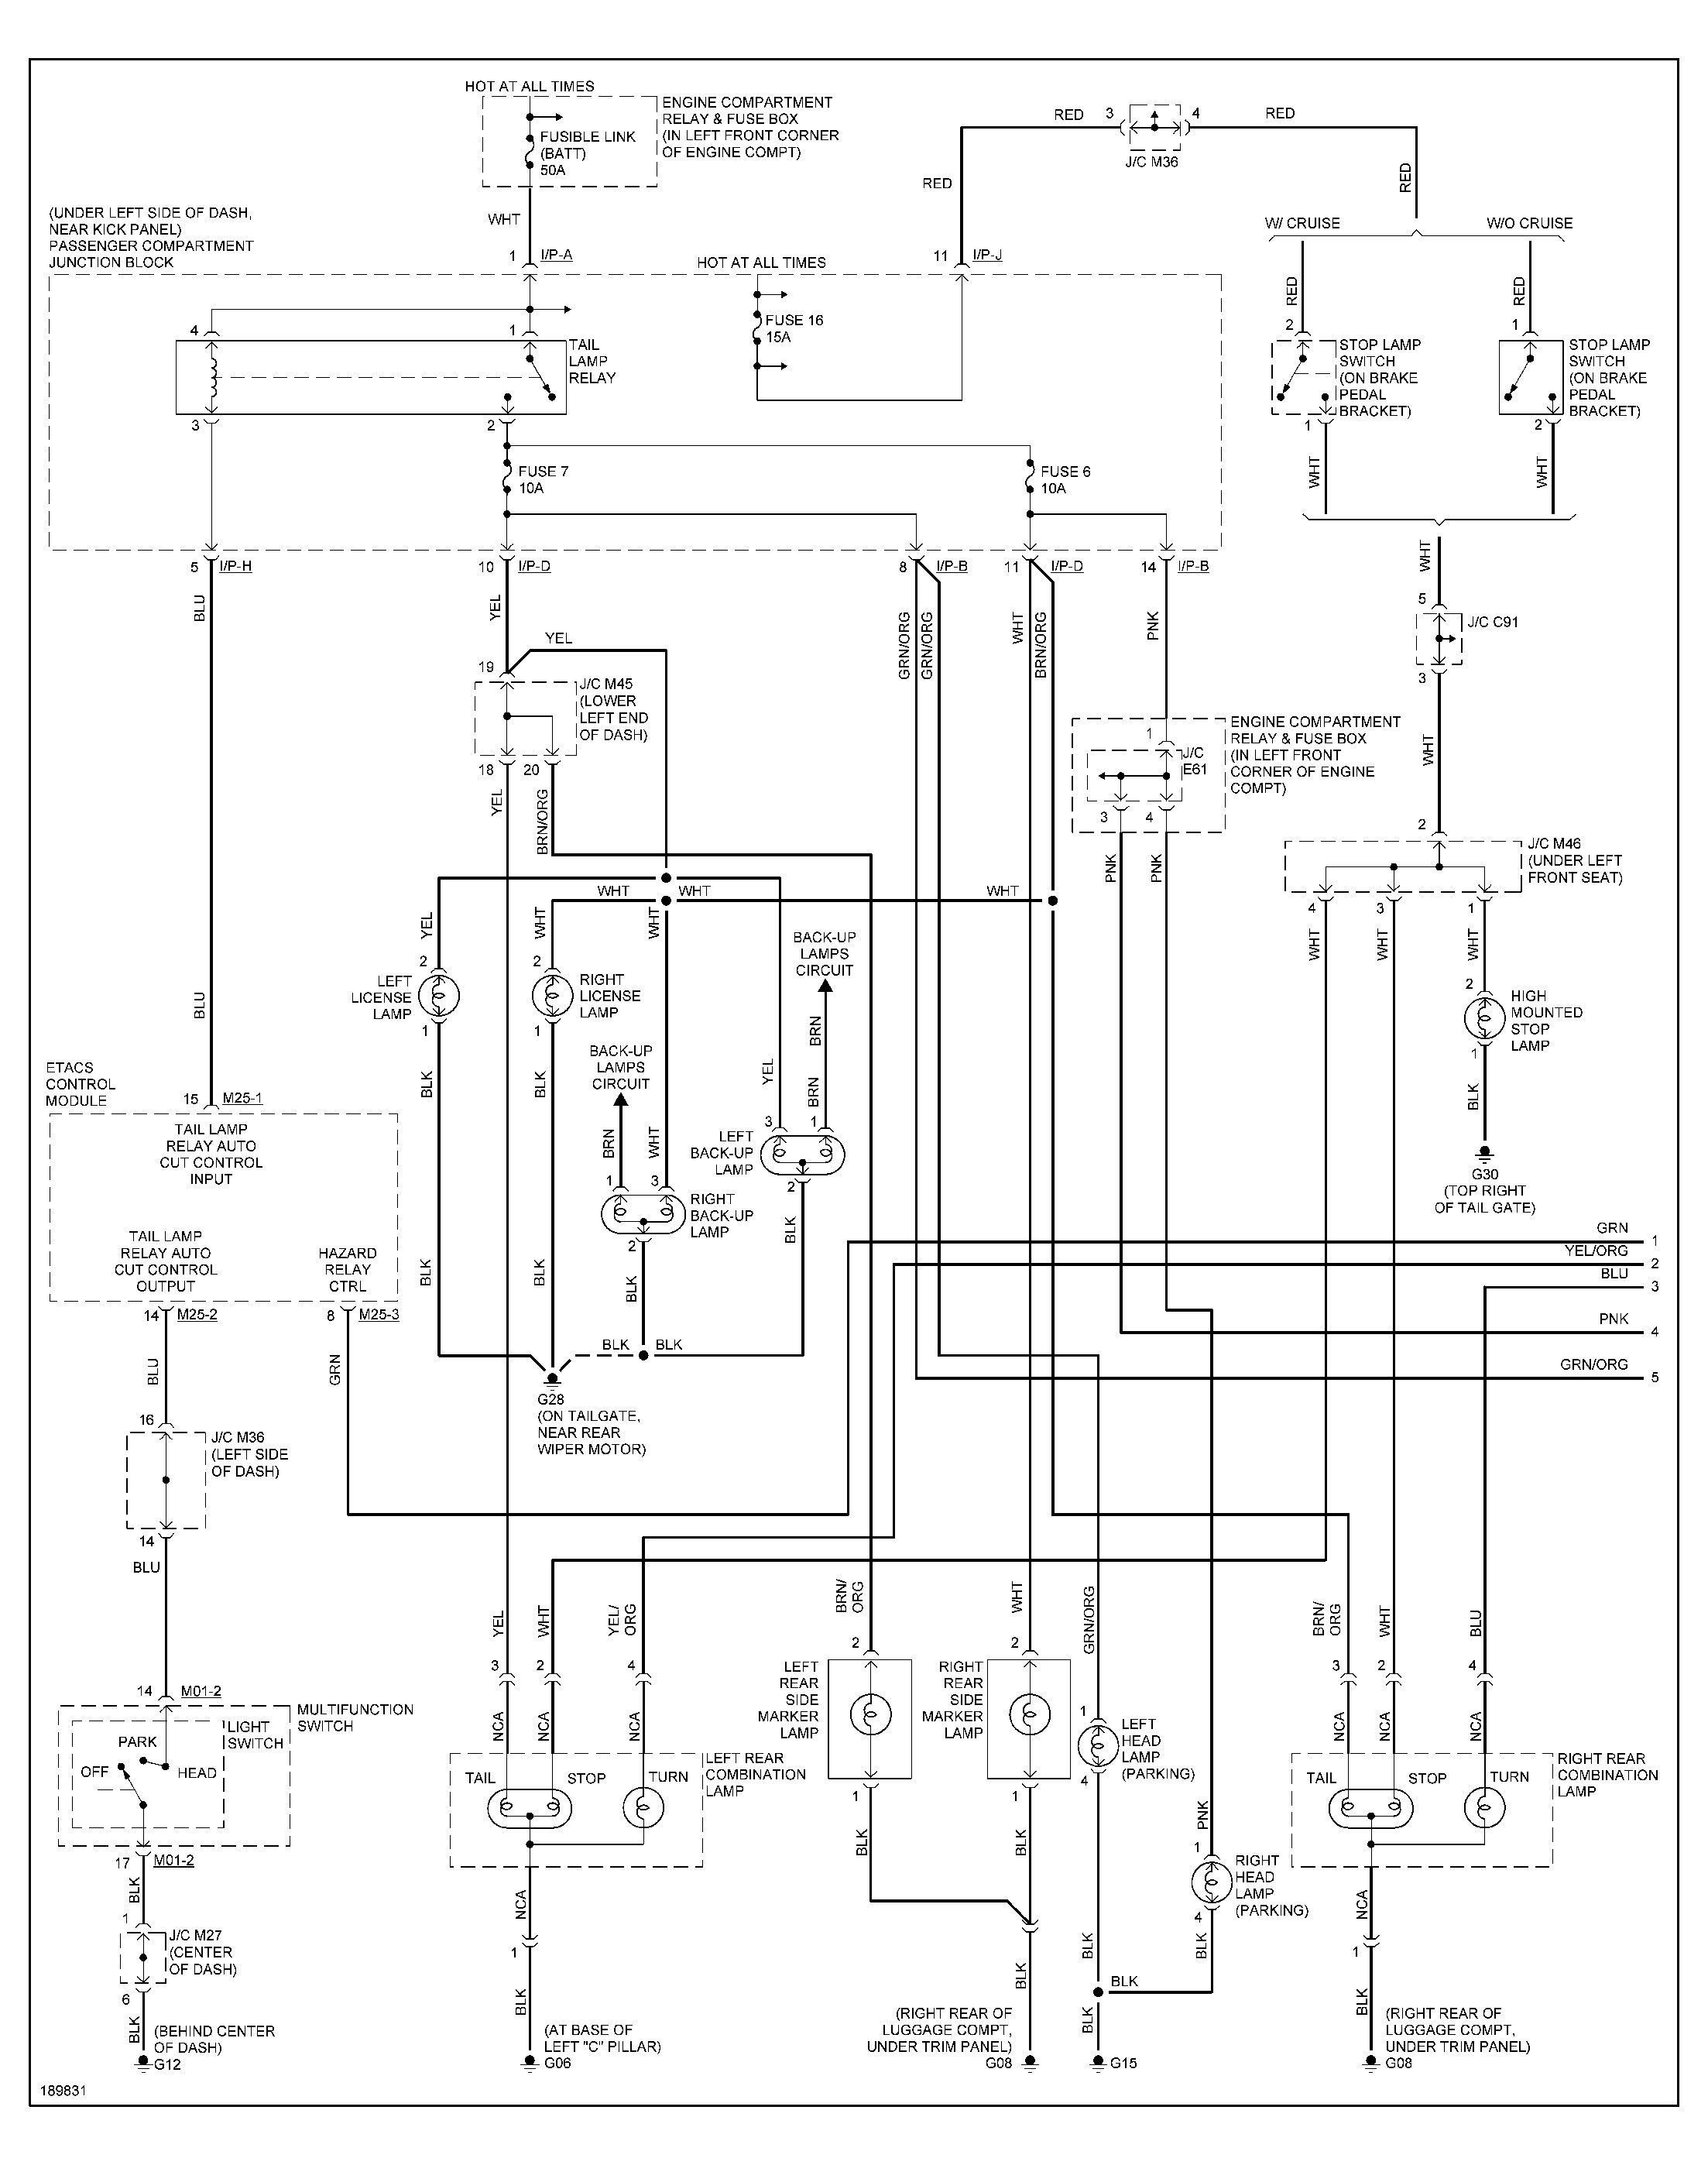 2006 Hyundai sonata Engine Diagram Unique Hyundai Wiring Diagrams Free  Diagram Of 2006 Hyundai sonata Engine